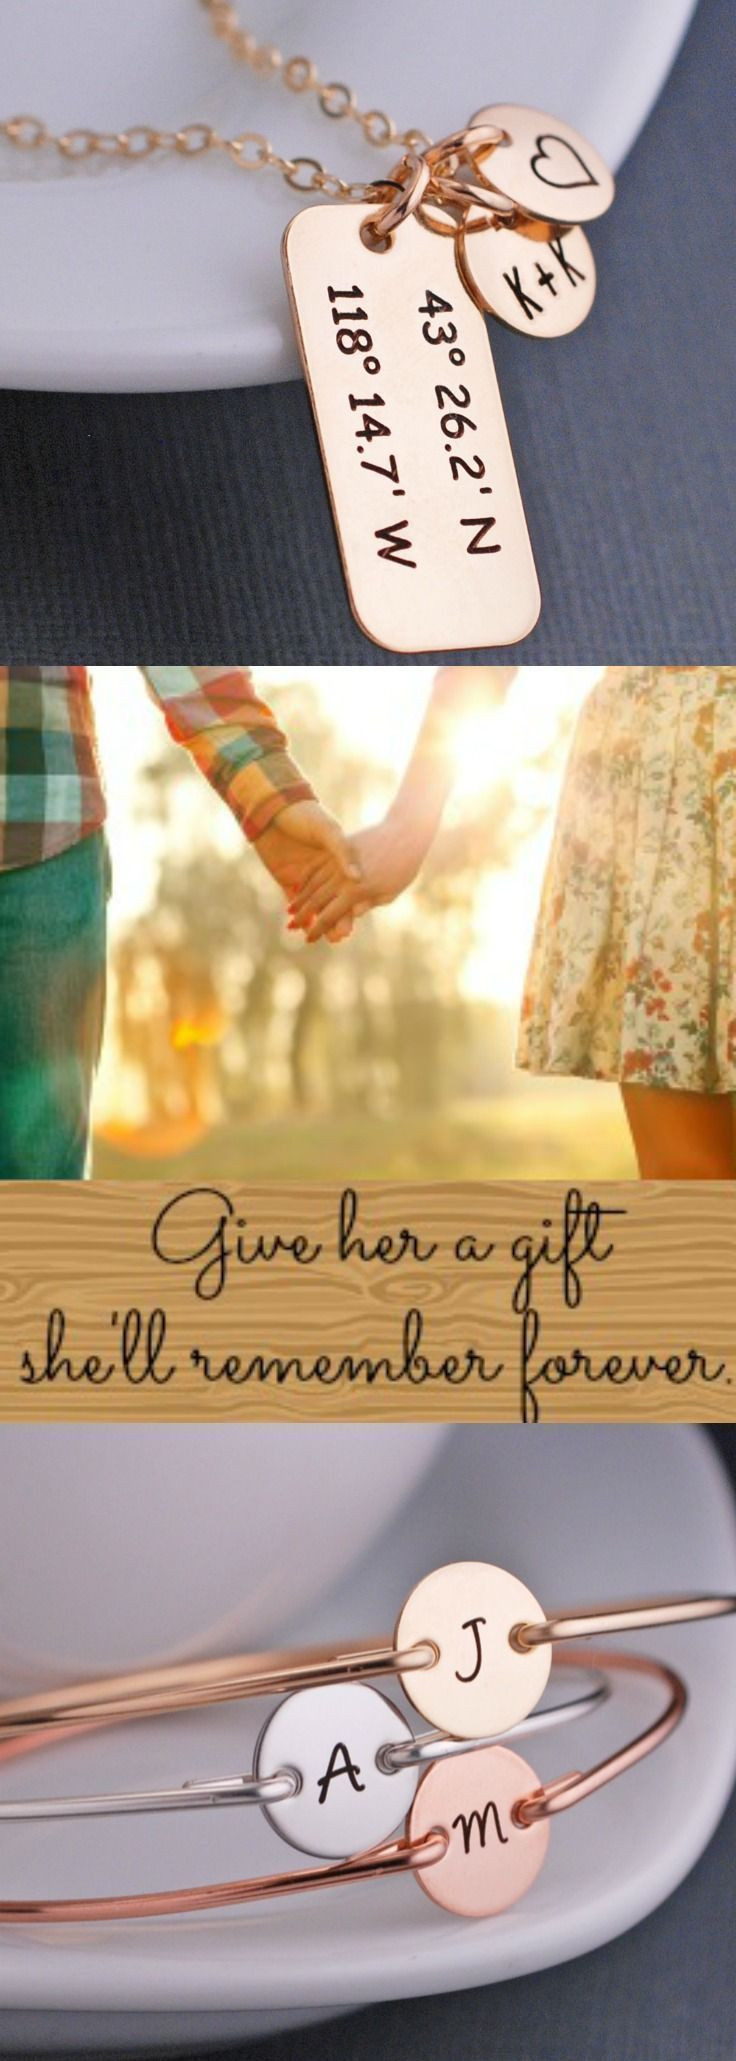 Best ideas about Wife Gift Ideas . Save or Pin Best 25 Girlfriend anniversary ts ideas on Pinterest Now.